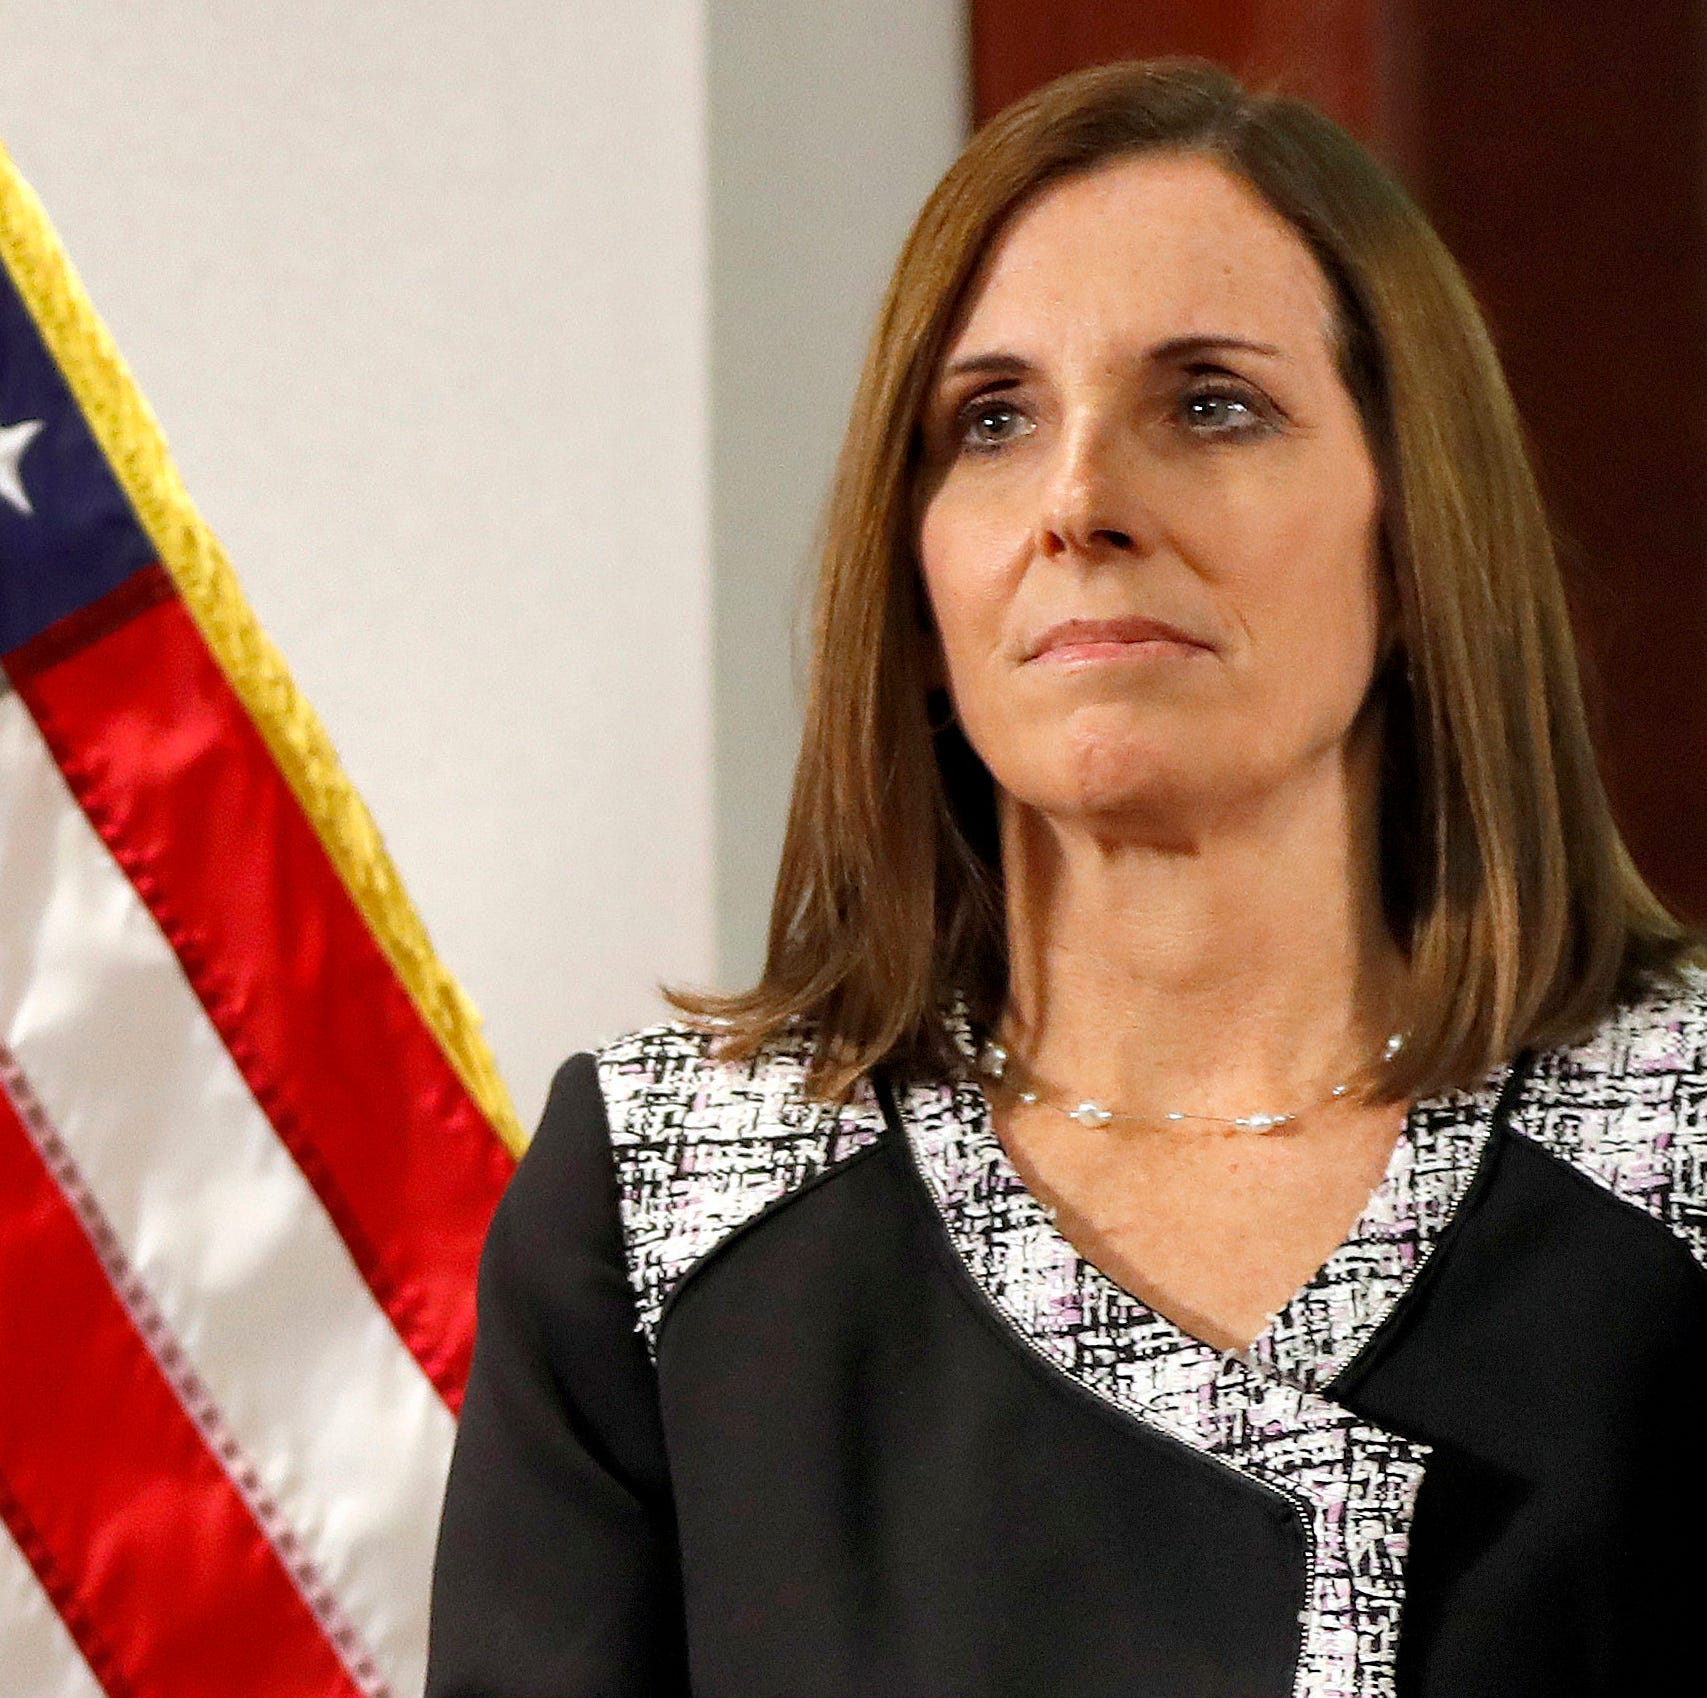 Martha McSally's support for Trump's national emergency could sink her in 2020